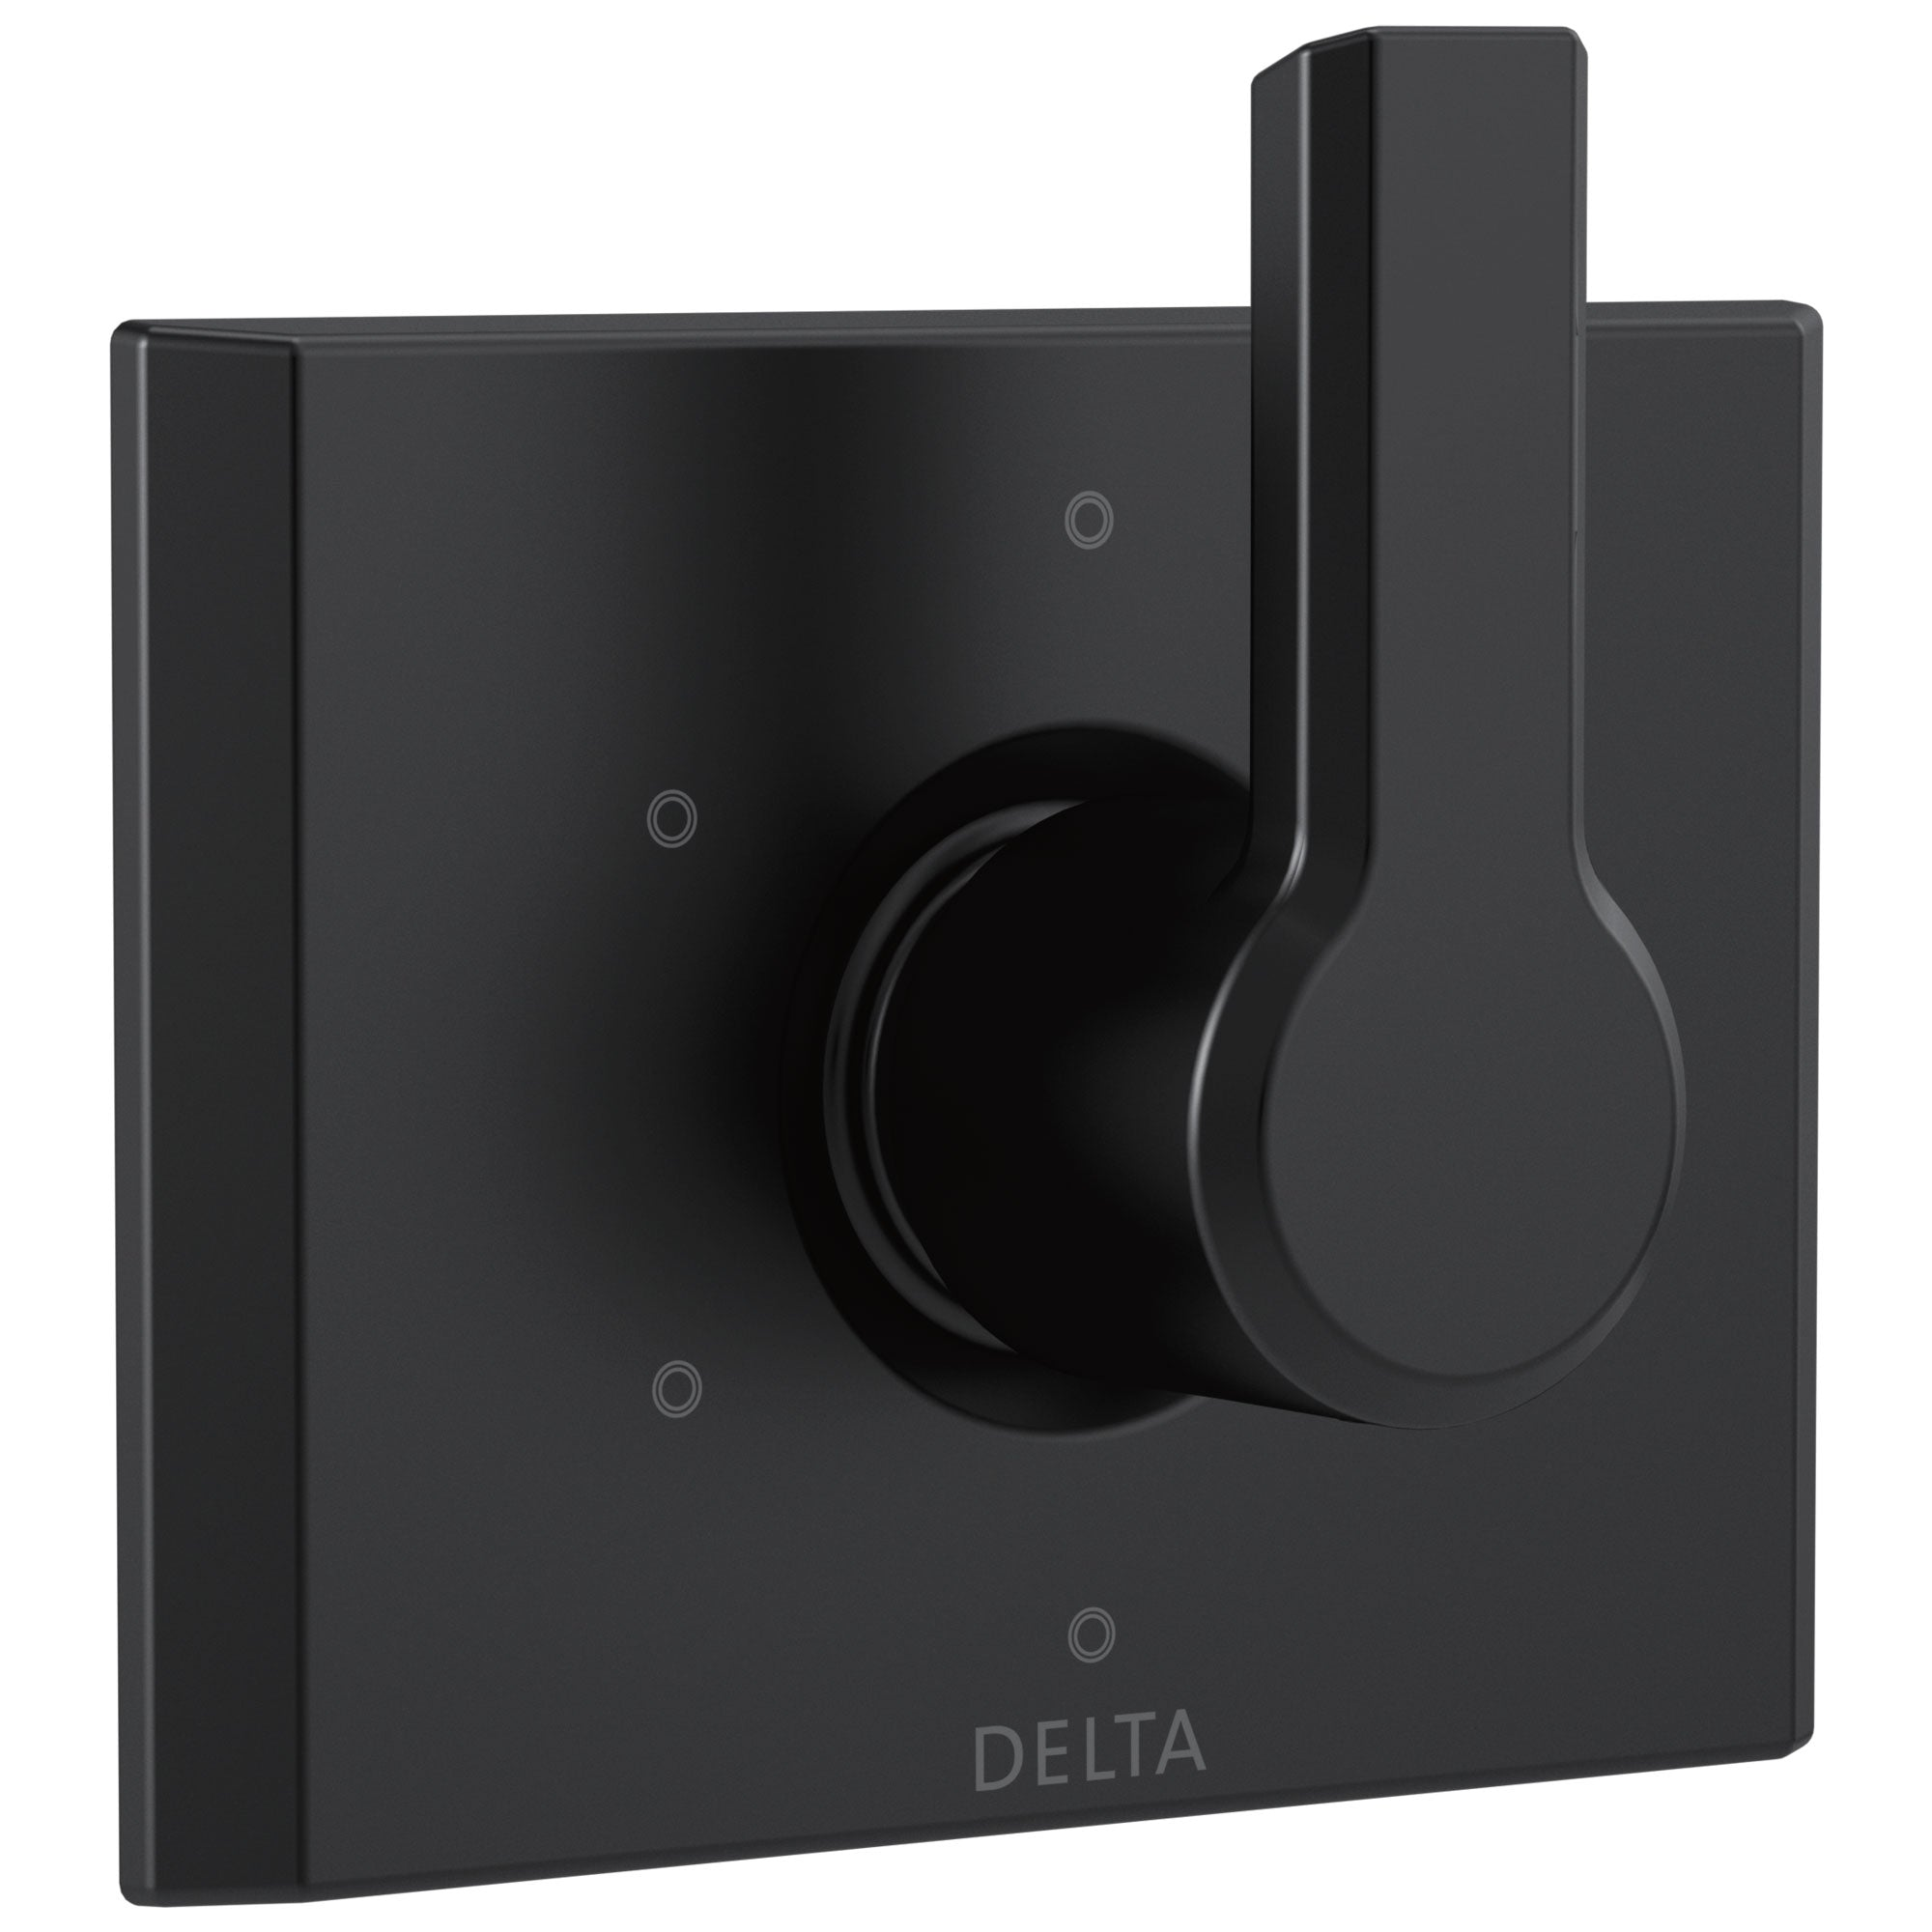 Delta Pivotal Modern Matte Black Finish 6-Setting 3 Outlet Port Shower System Diverter Includes Lever Handle and Rough-in Valve D3561V